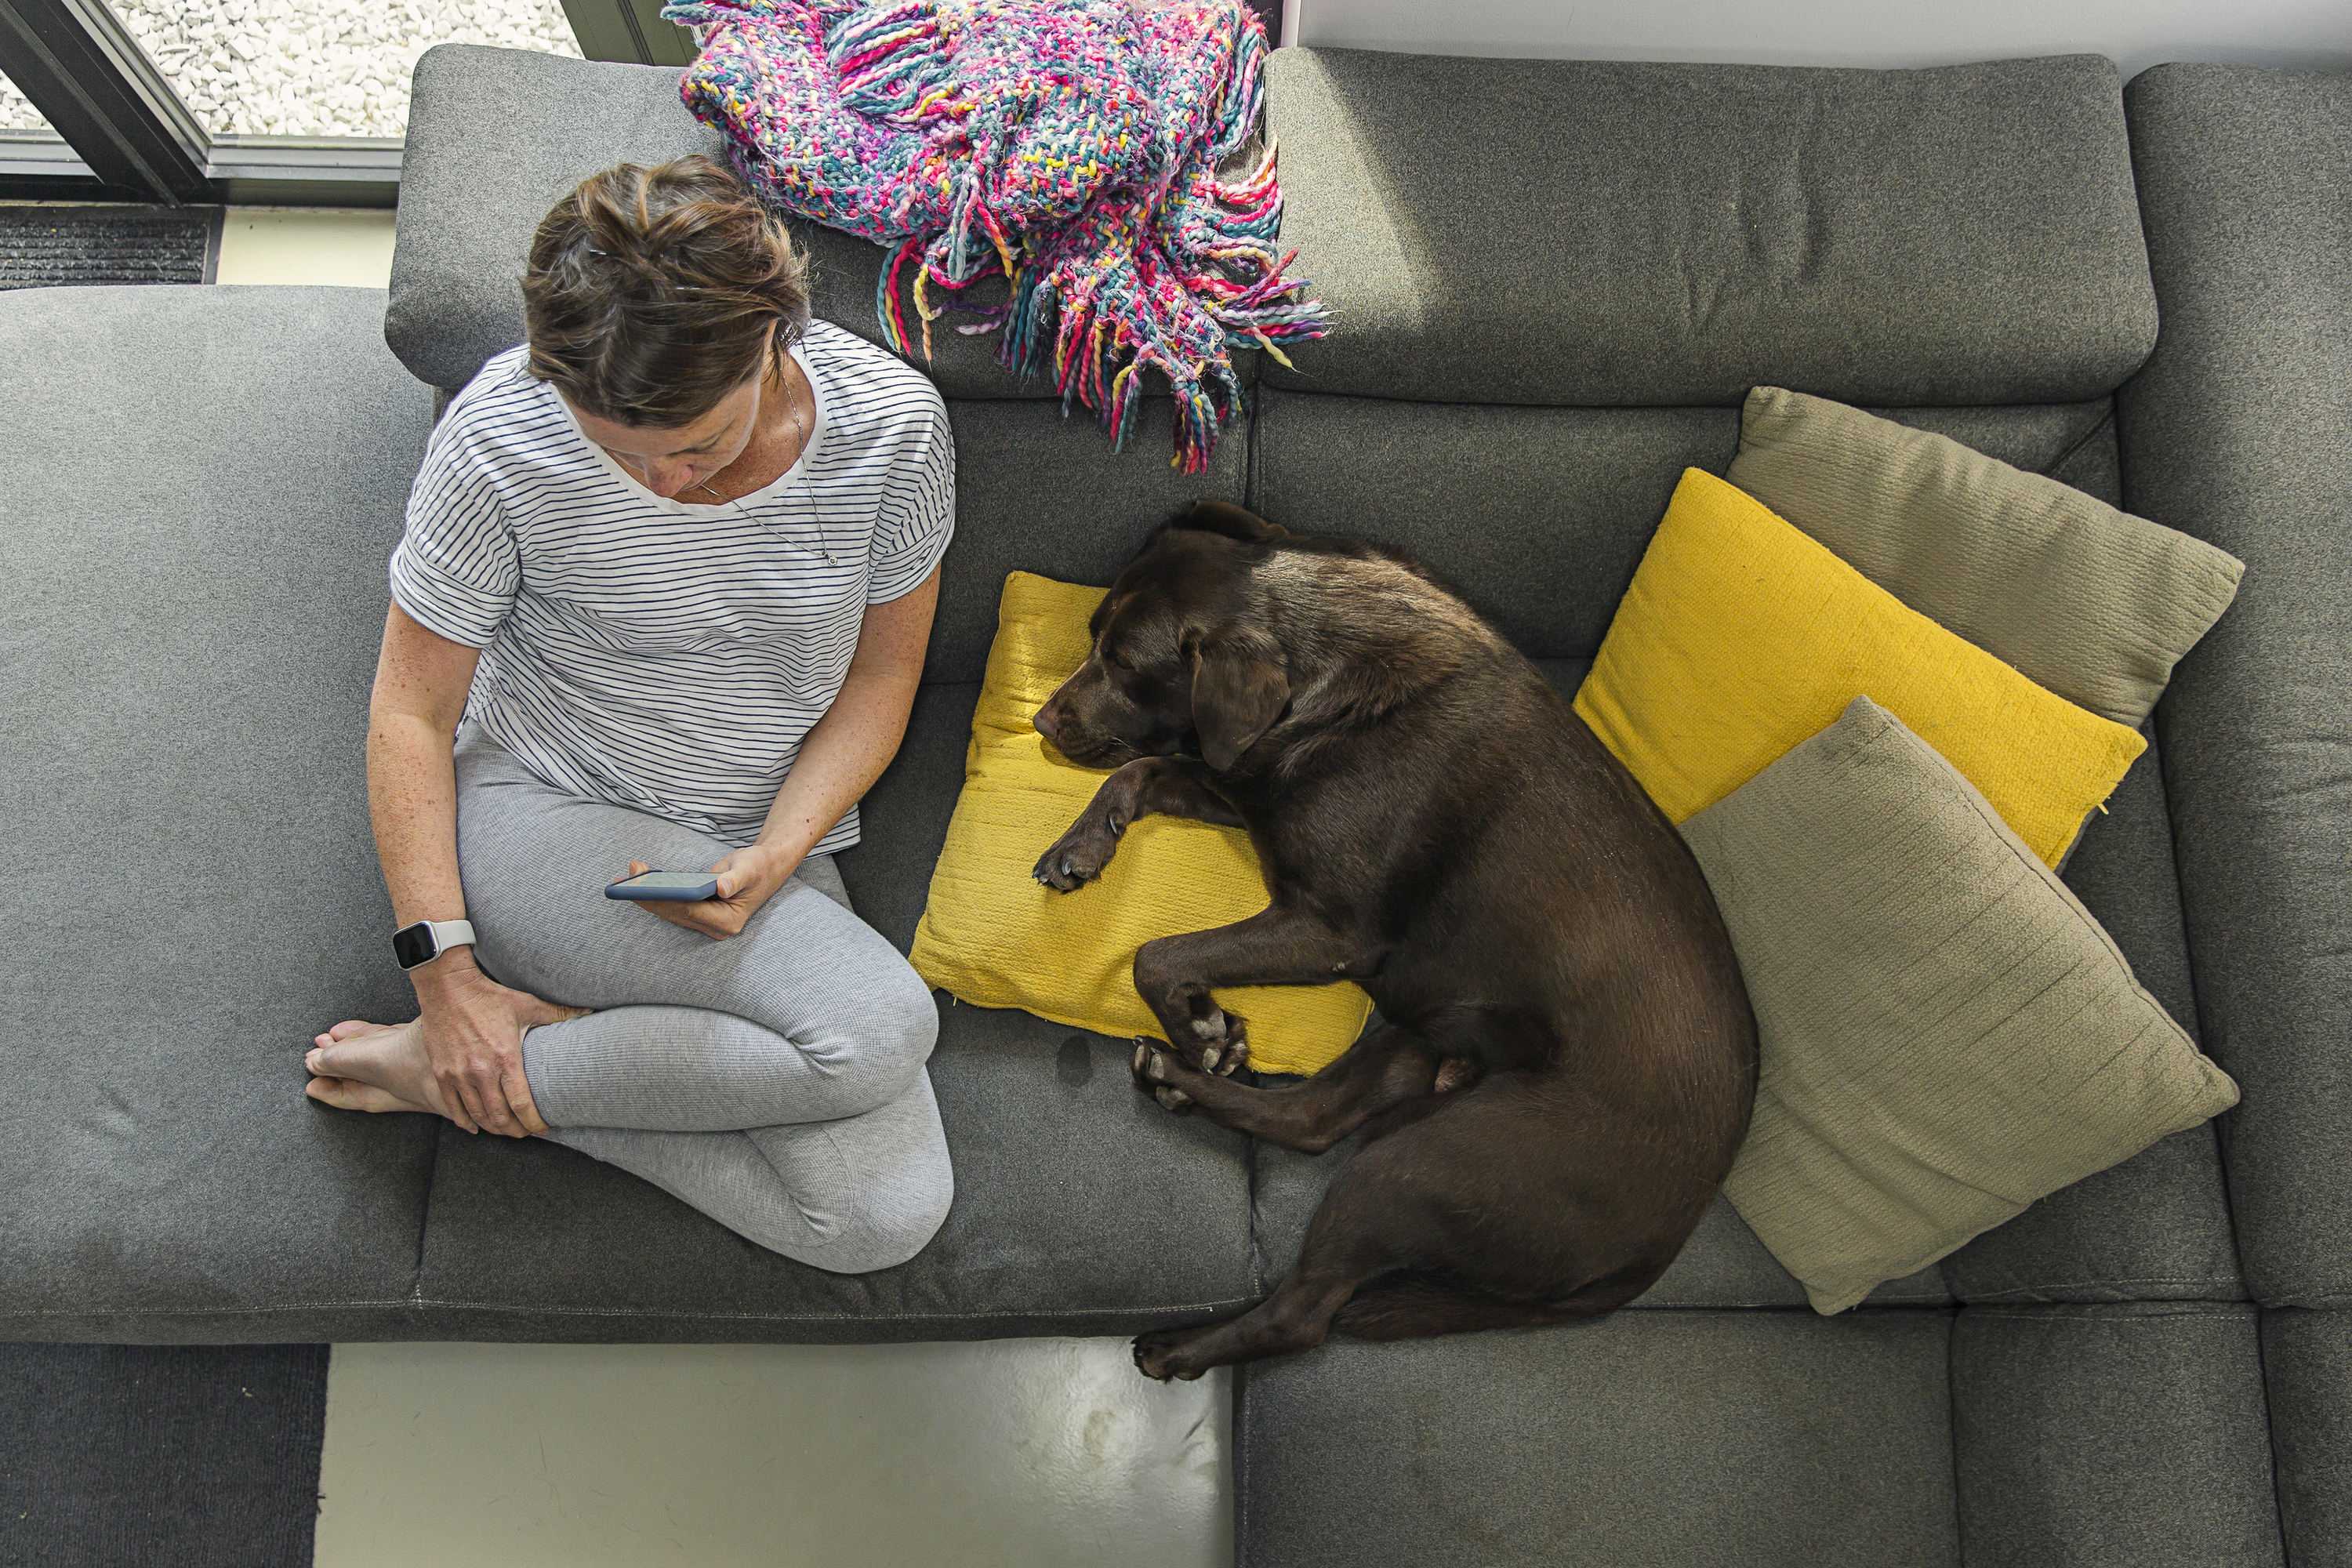 A woman sitting near a brown dog on a grey couch.